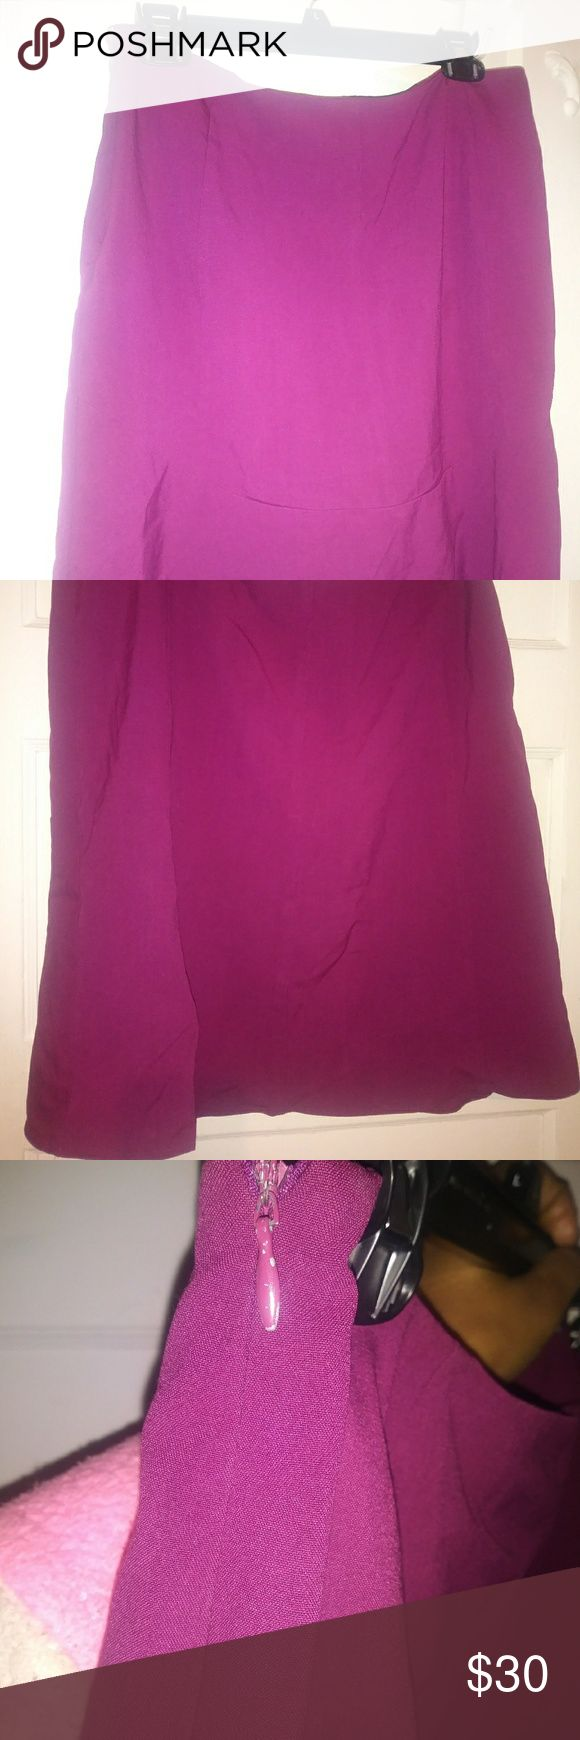 New York and Company- Dark Magenta Skirt Dark Magenta Skirt New York & Company Skirts